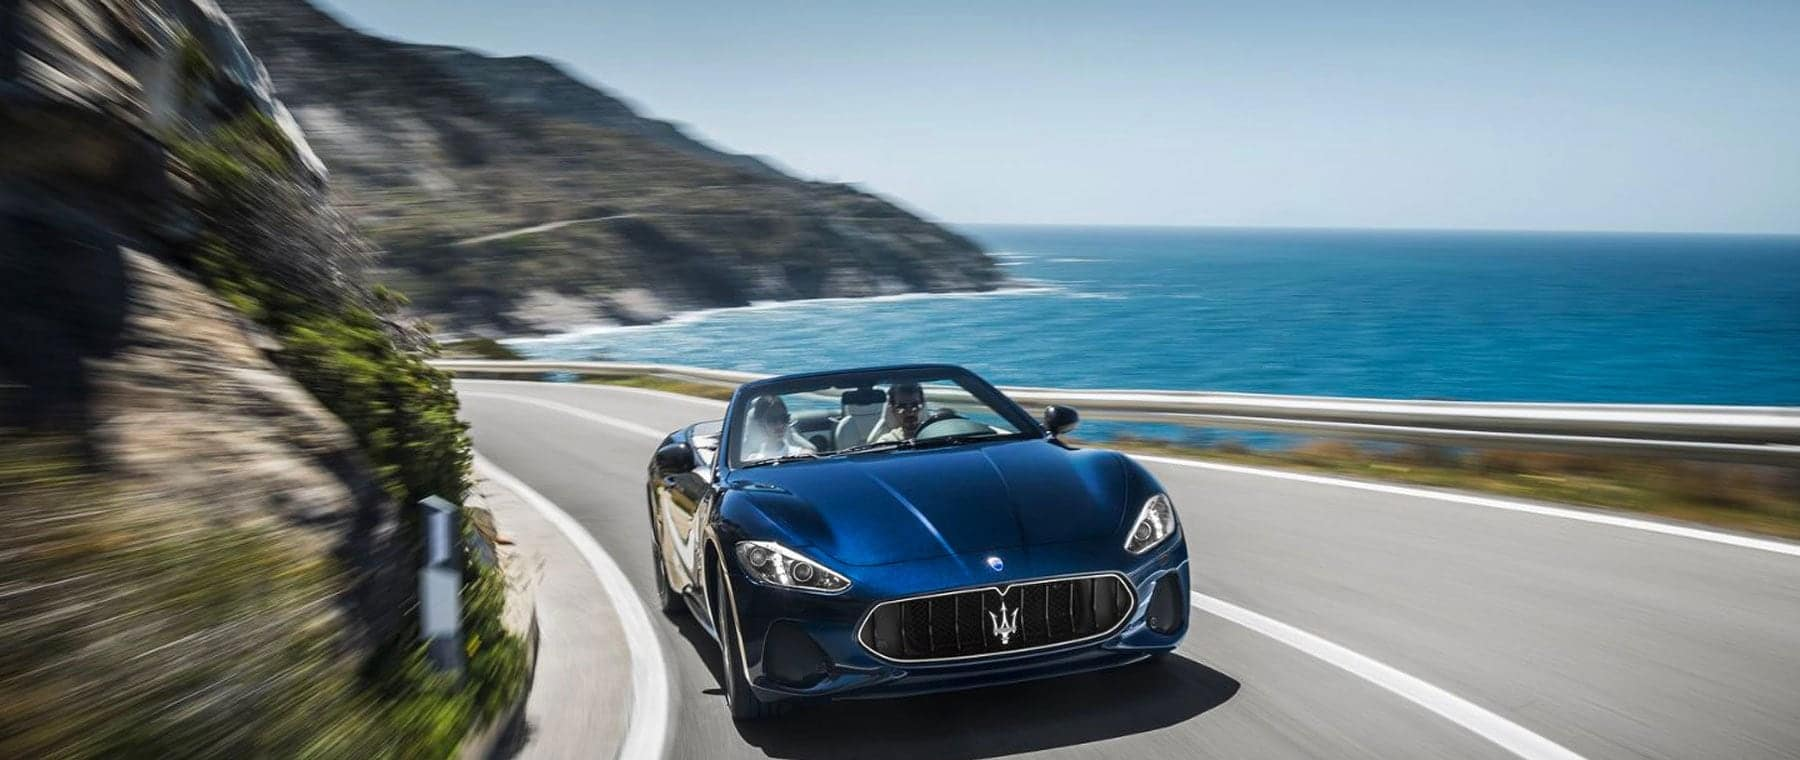 Blue Maserati convertible on ocean view road